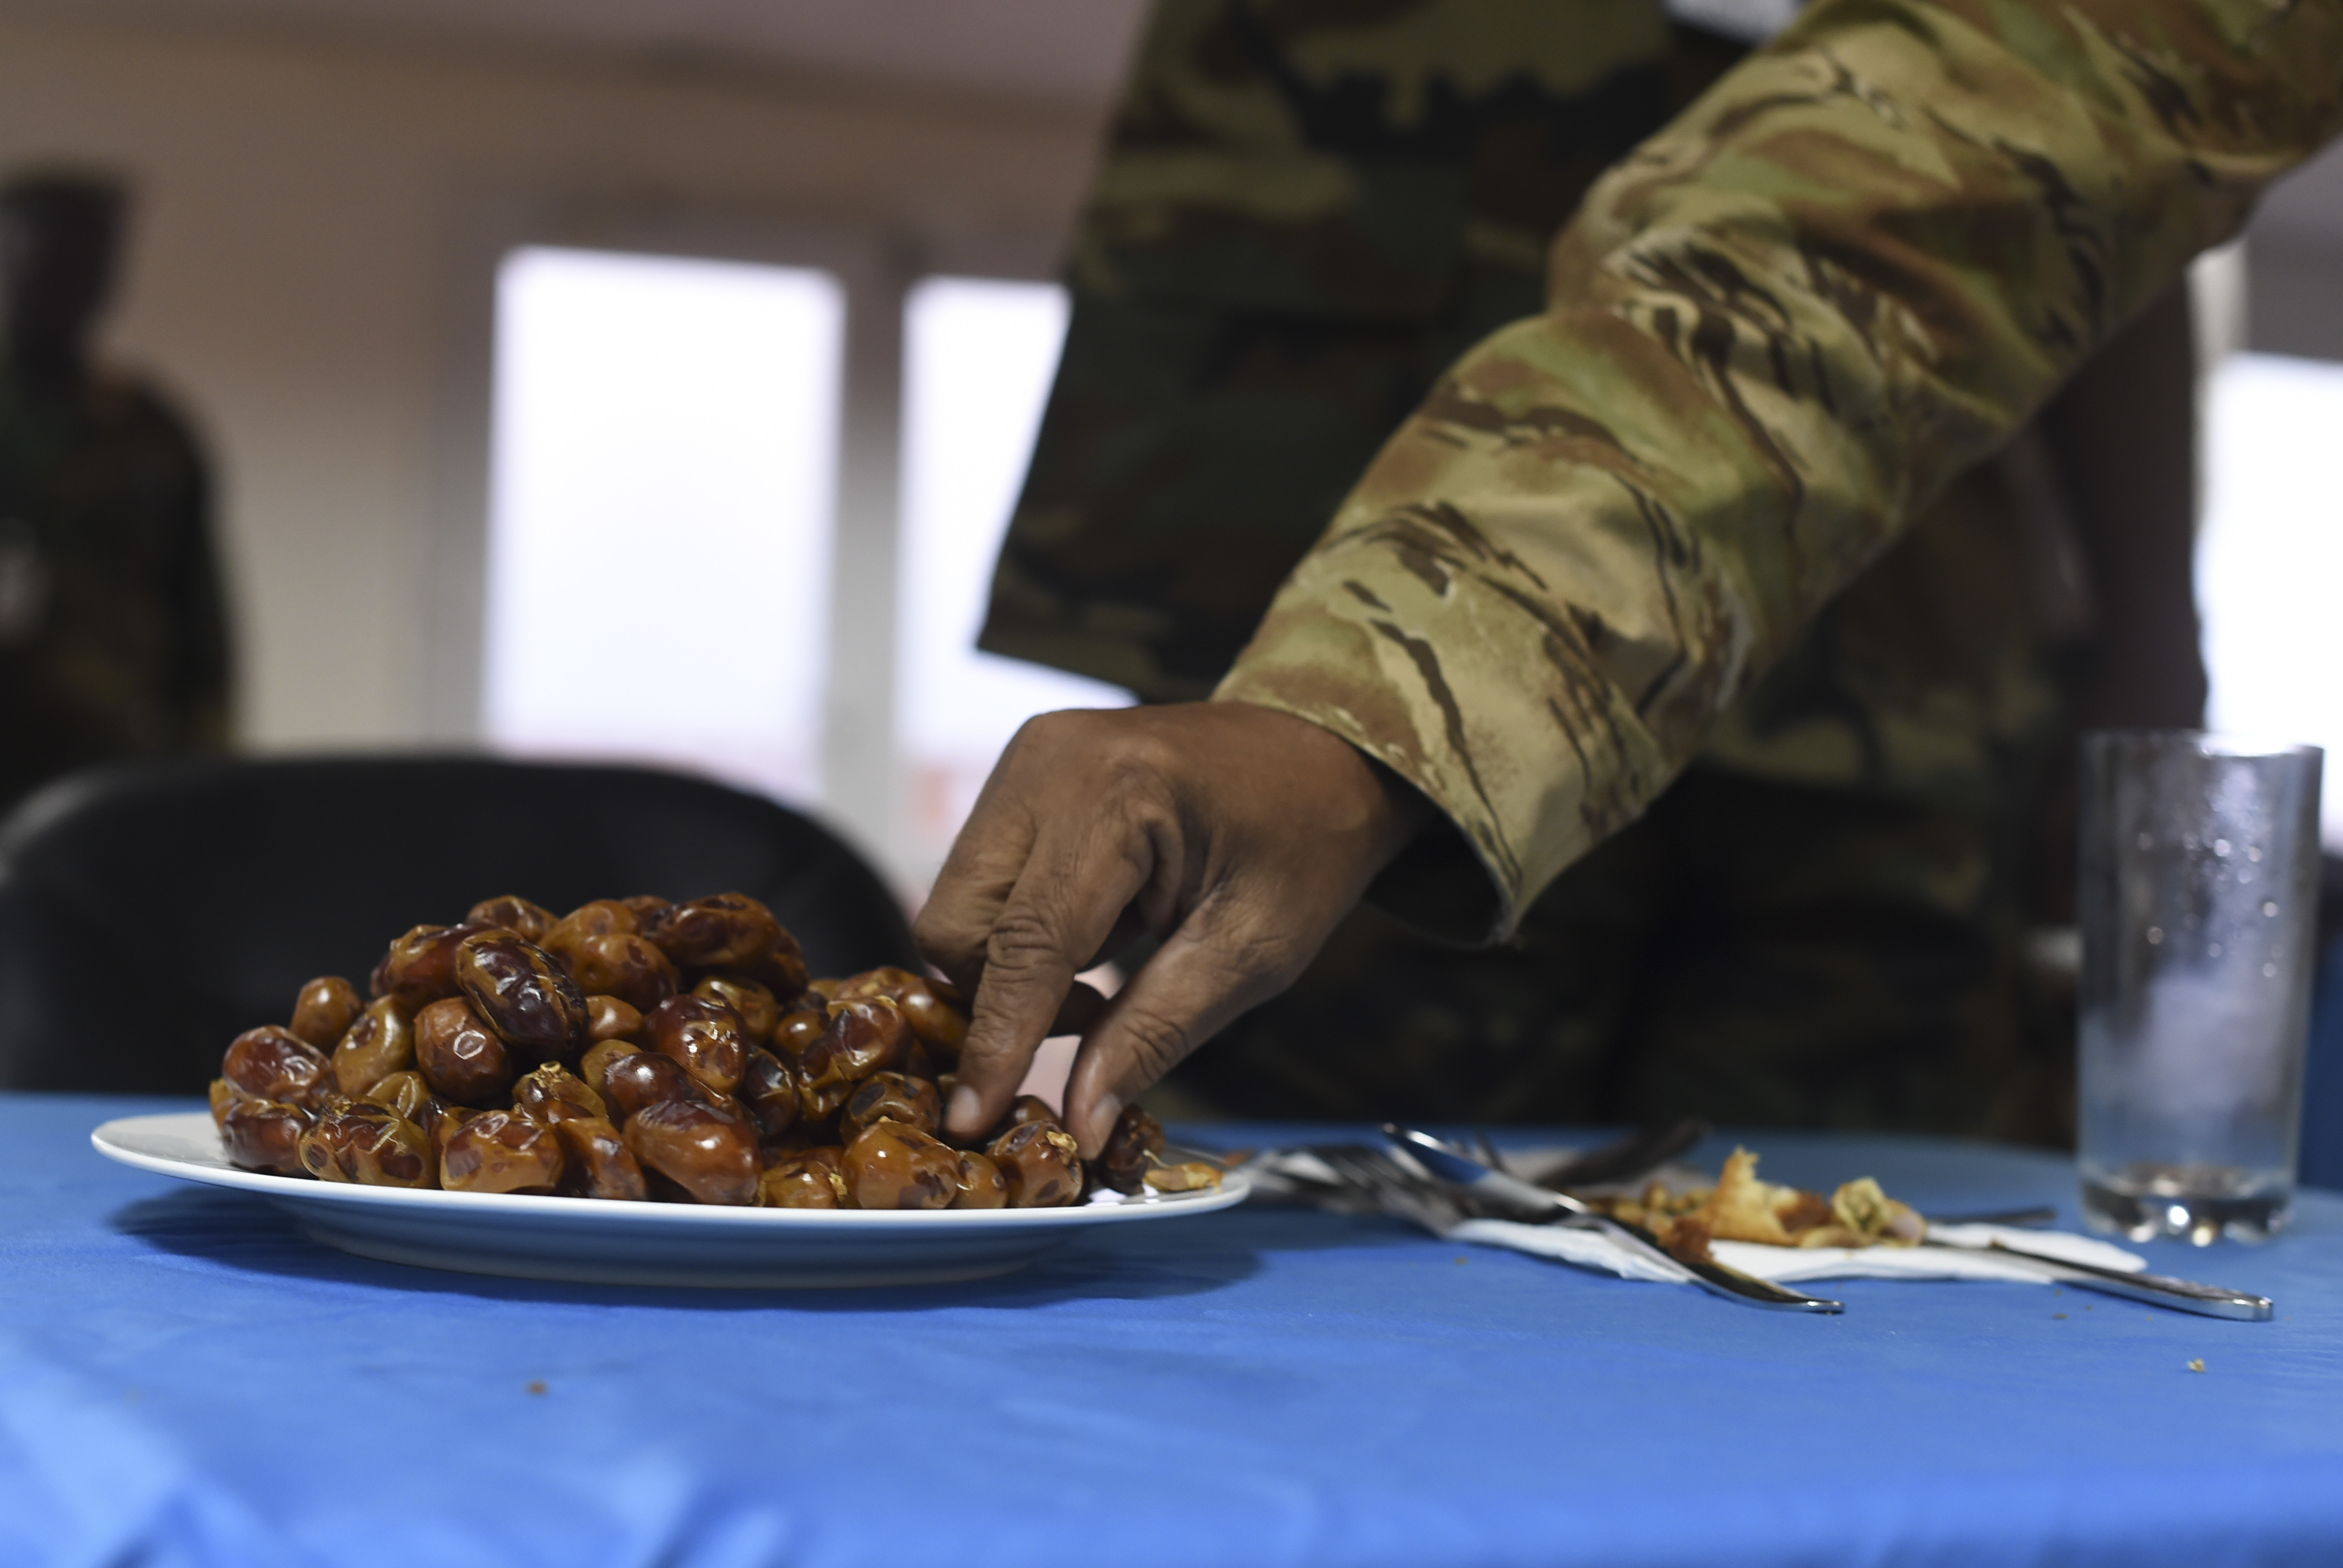 A member of the Somali National Army reaches for a date to break his fast during Ramadan at the Mogadishu International Airport, Mogadishu, Somalia, June 5, 2017. During Ramadan, Muslims abstain from food and drink, including water from dawn till dusk. After sunset, eating dates and drinking water traditionally breaks the fast. (U.S. Air Force Photo by Staff Sgt. Eboni Prince)